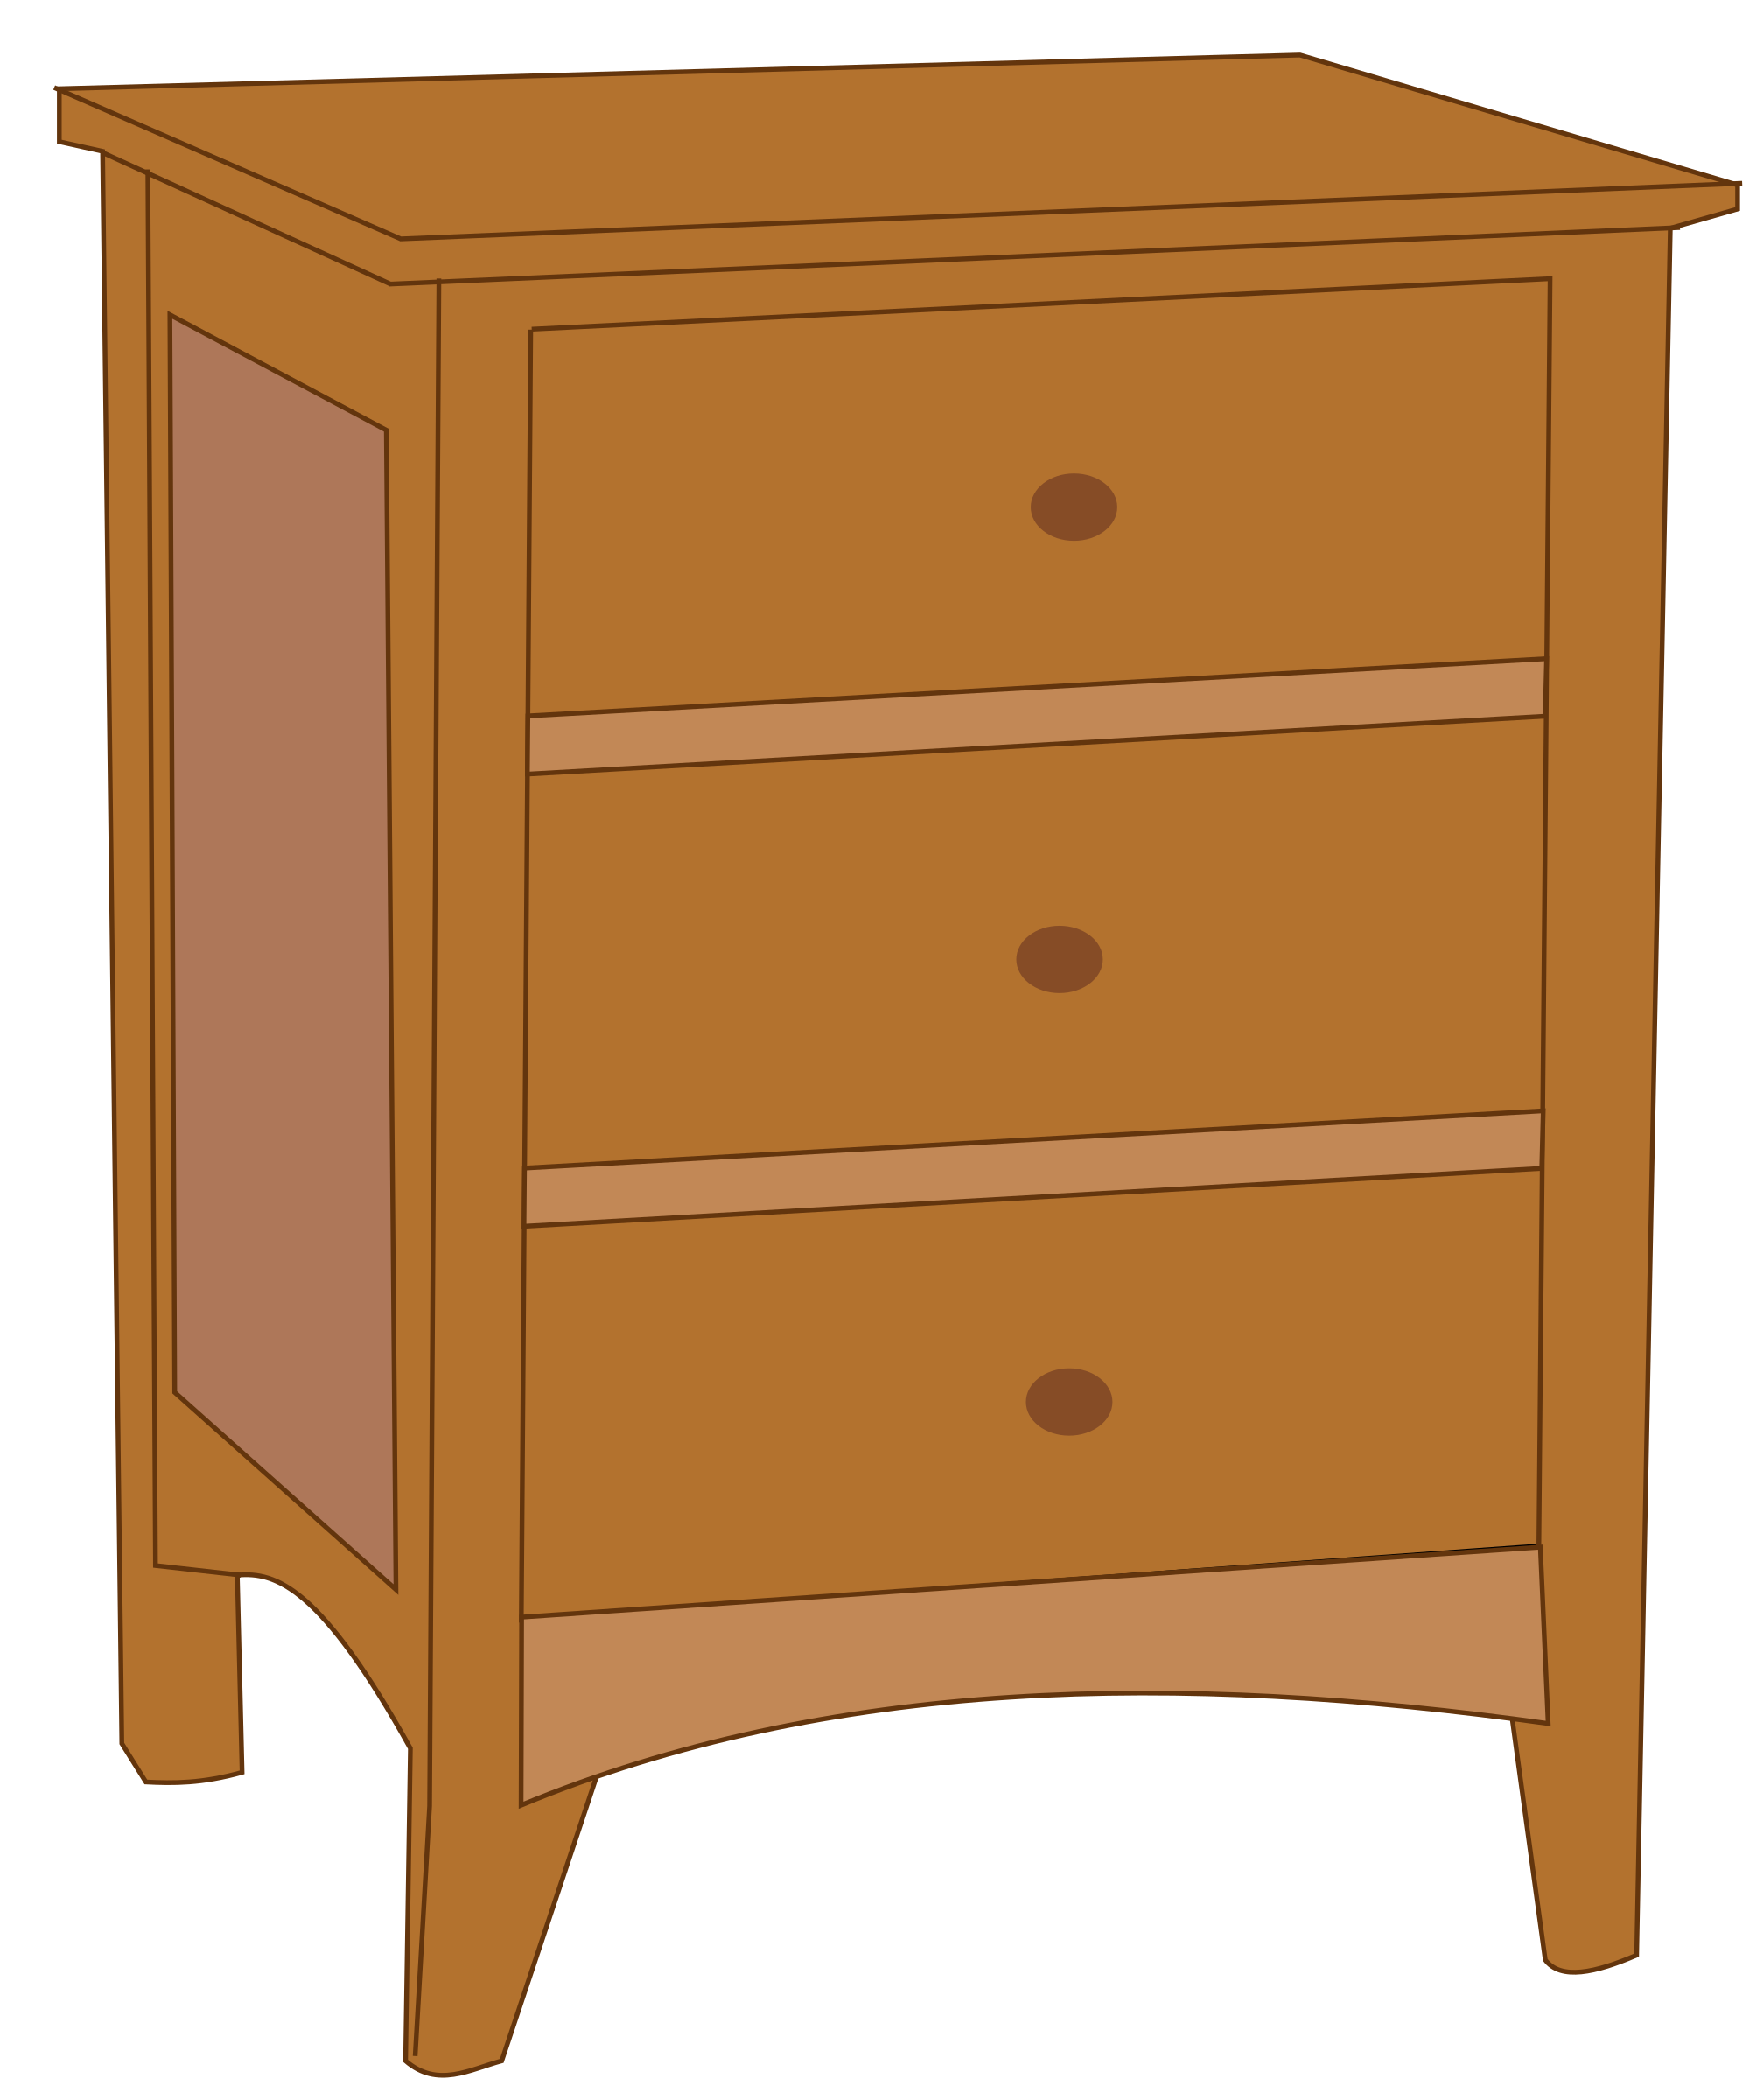 Free on dumielauxepices net. Dresser clipart tv stand